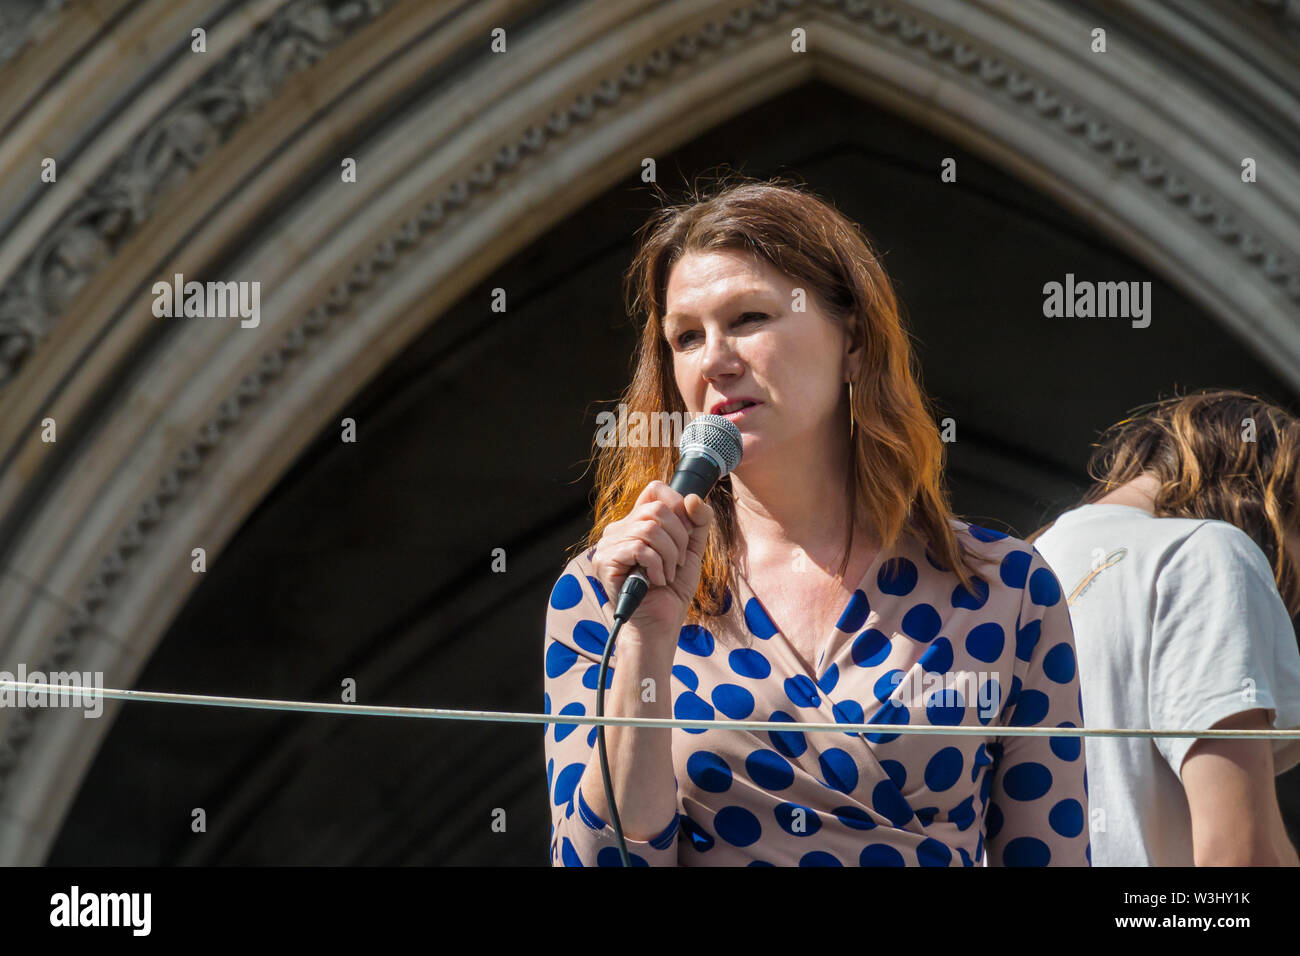 London, UK. 15th July 2019. Sue Hayman MP, Labour shadow minister for the environment, food and rural affairs  speaks from the yacht as Extinction Rebellion begins another series of protests in five major cities against the criminal inaction by the government on climate and ecological collapse. The protesters brought a yacht named after Polly Higgins who fought for years for an Ecocide Law to the Royal Courts of Justice and continued her fight blocking the Strand all day with performances, discussions, speeches, music and ceremonies in front of the yacht. Peter Marshall/Alamy Live News - Stock Image